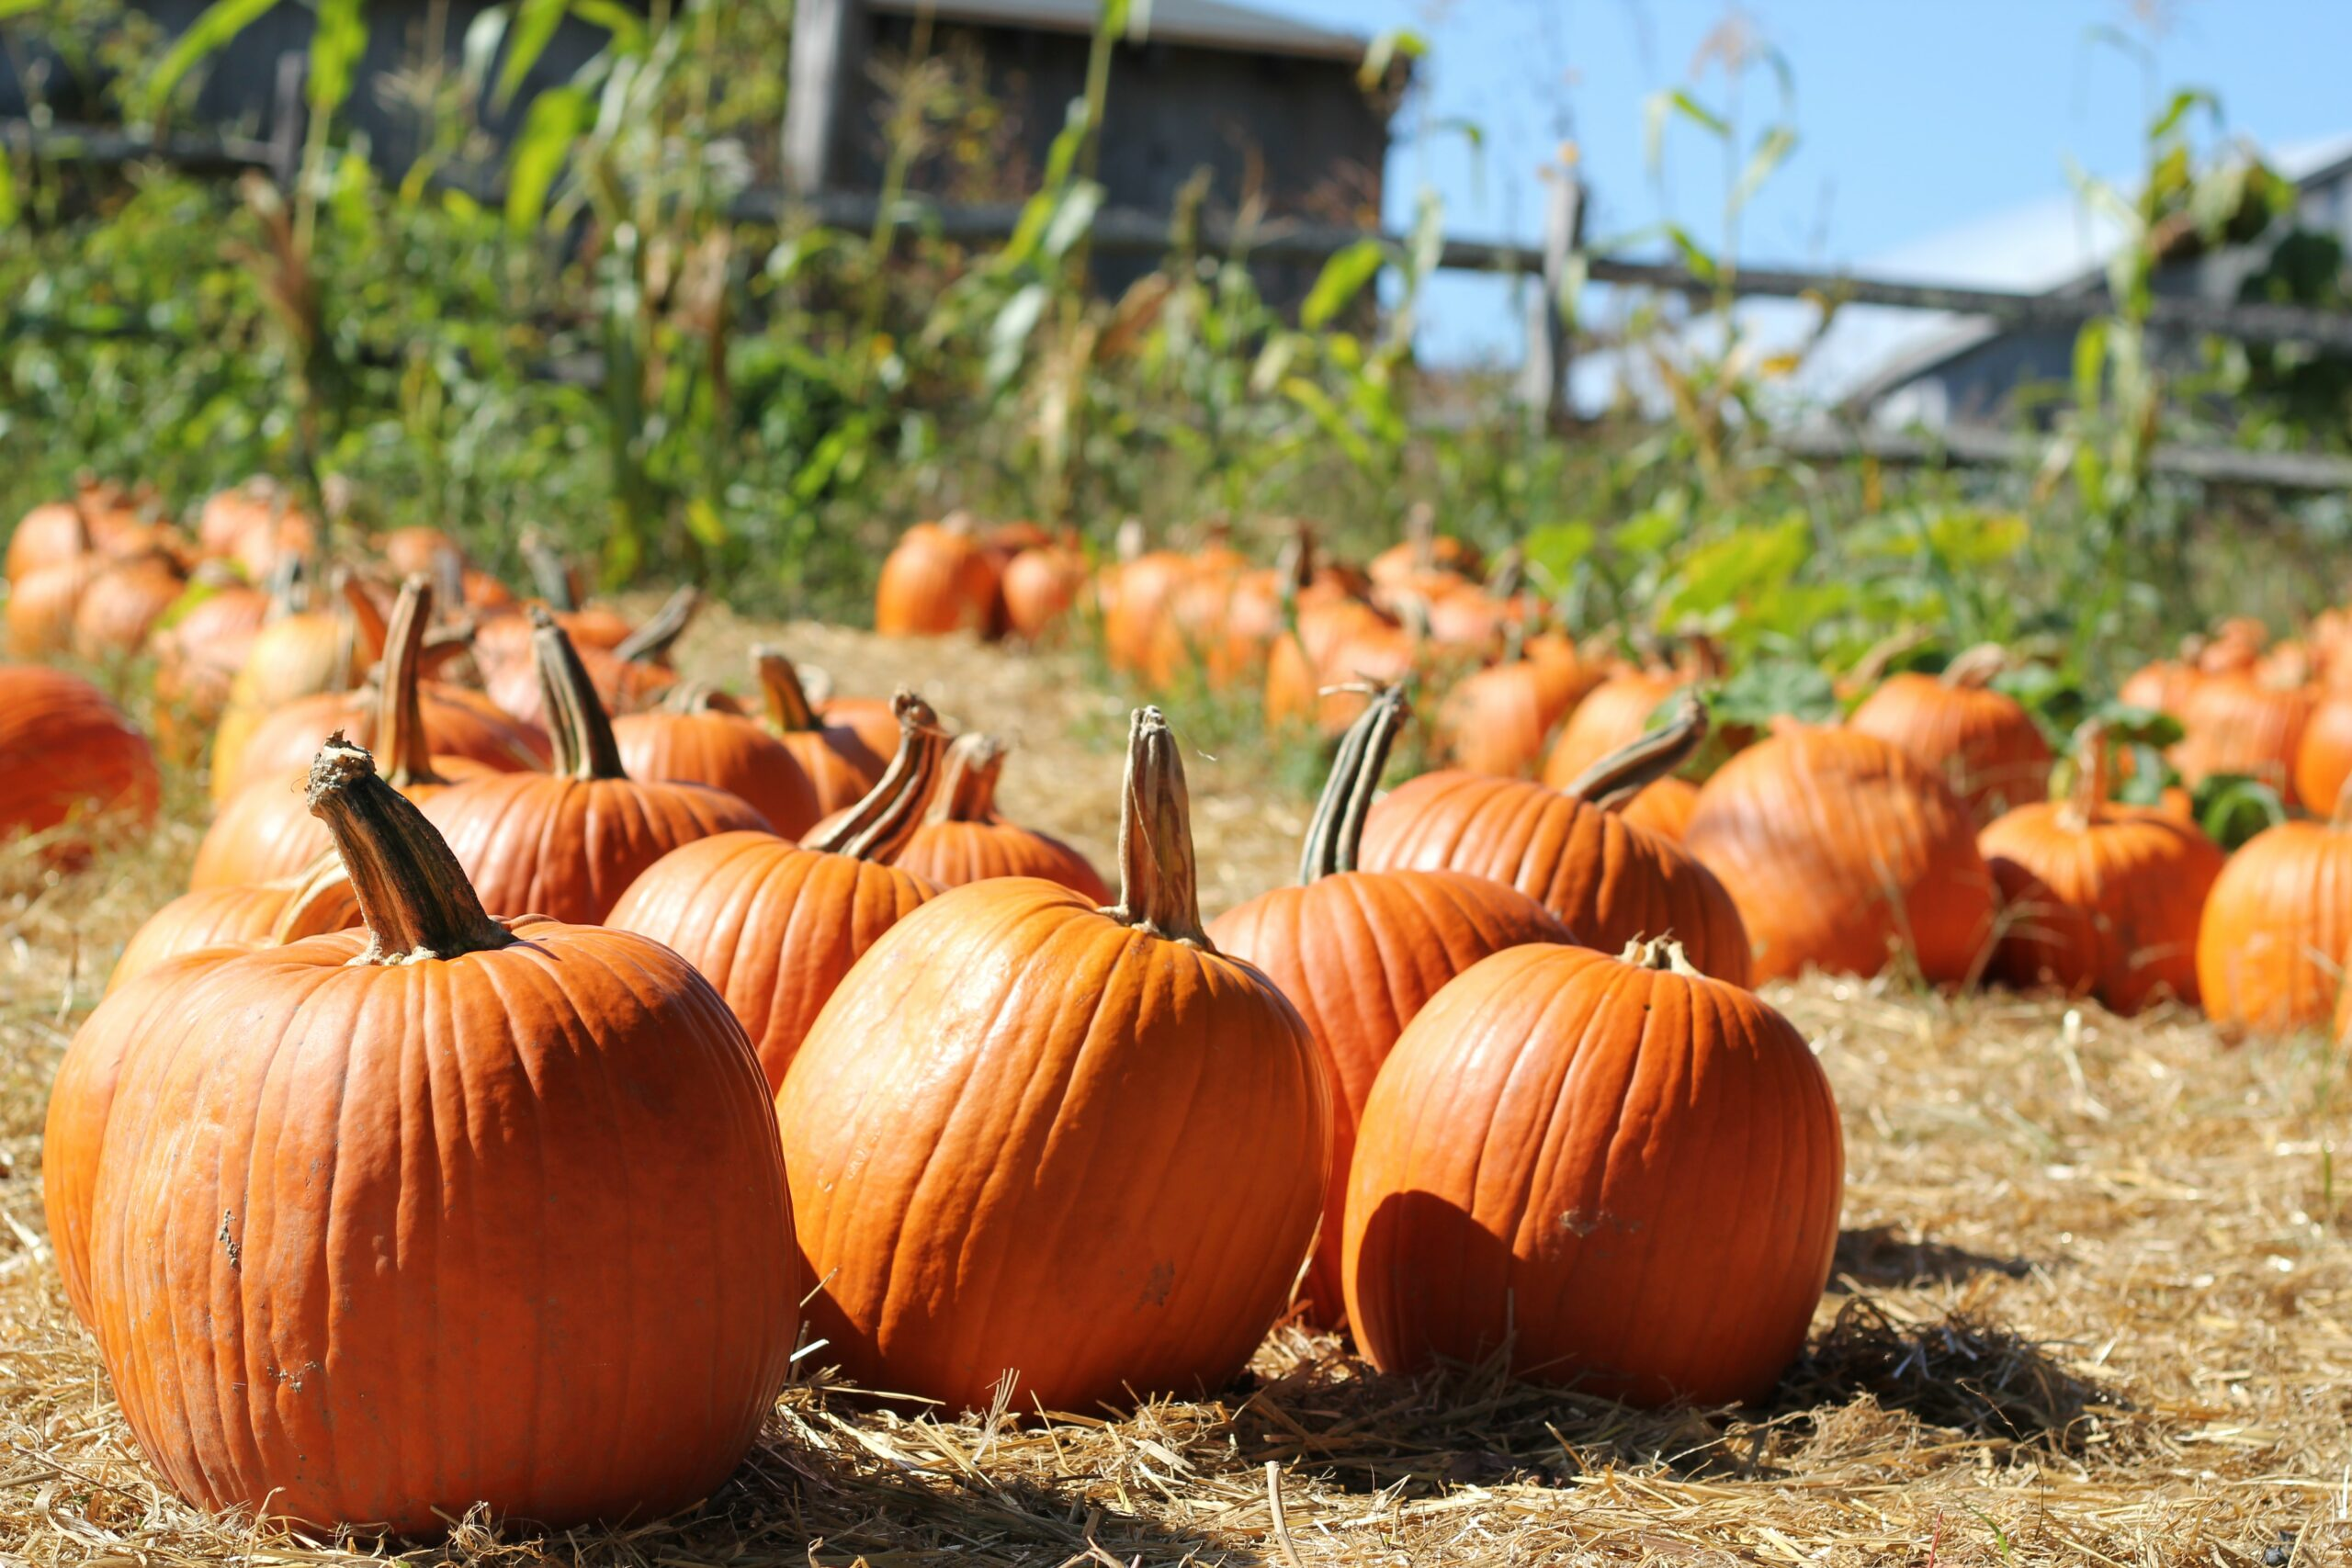 Photo of orange pumpkins on brown grass on a sunny day.